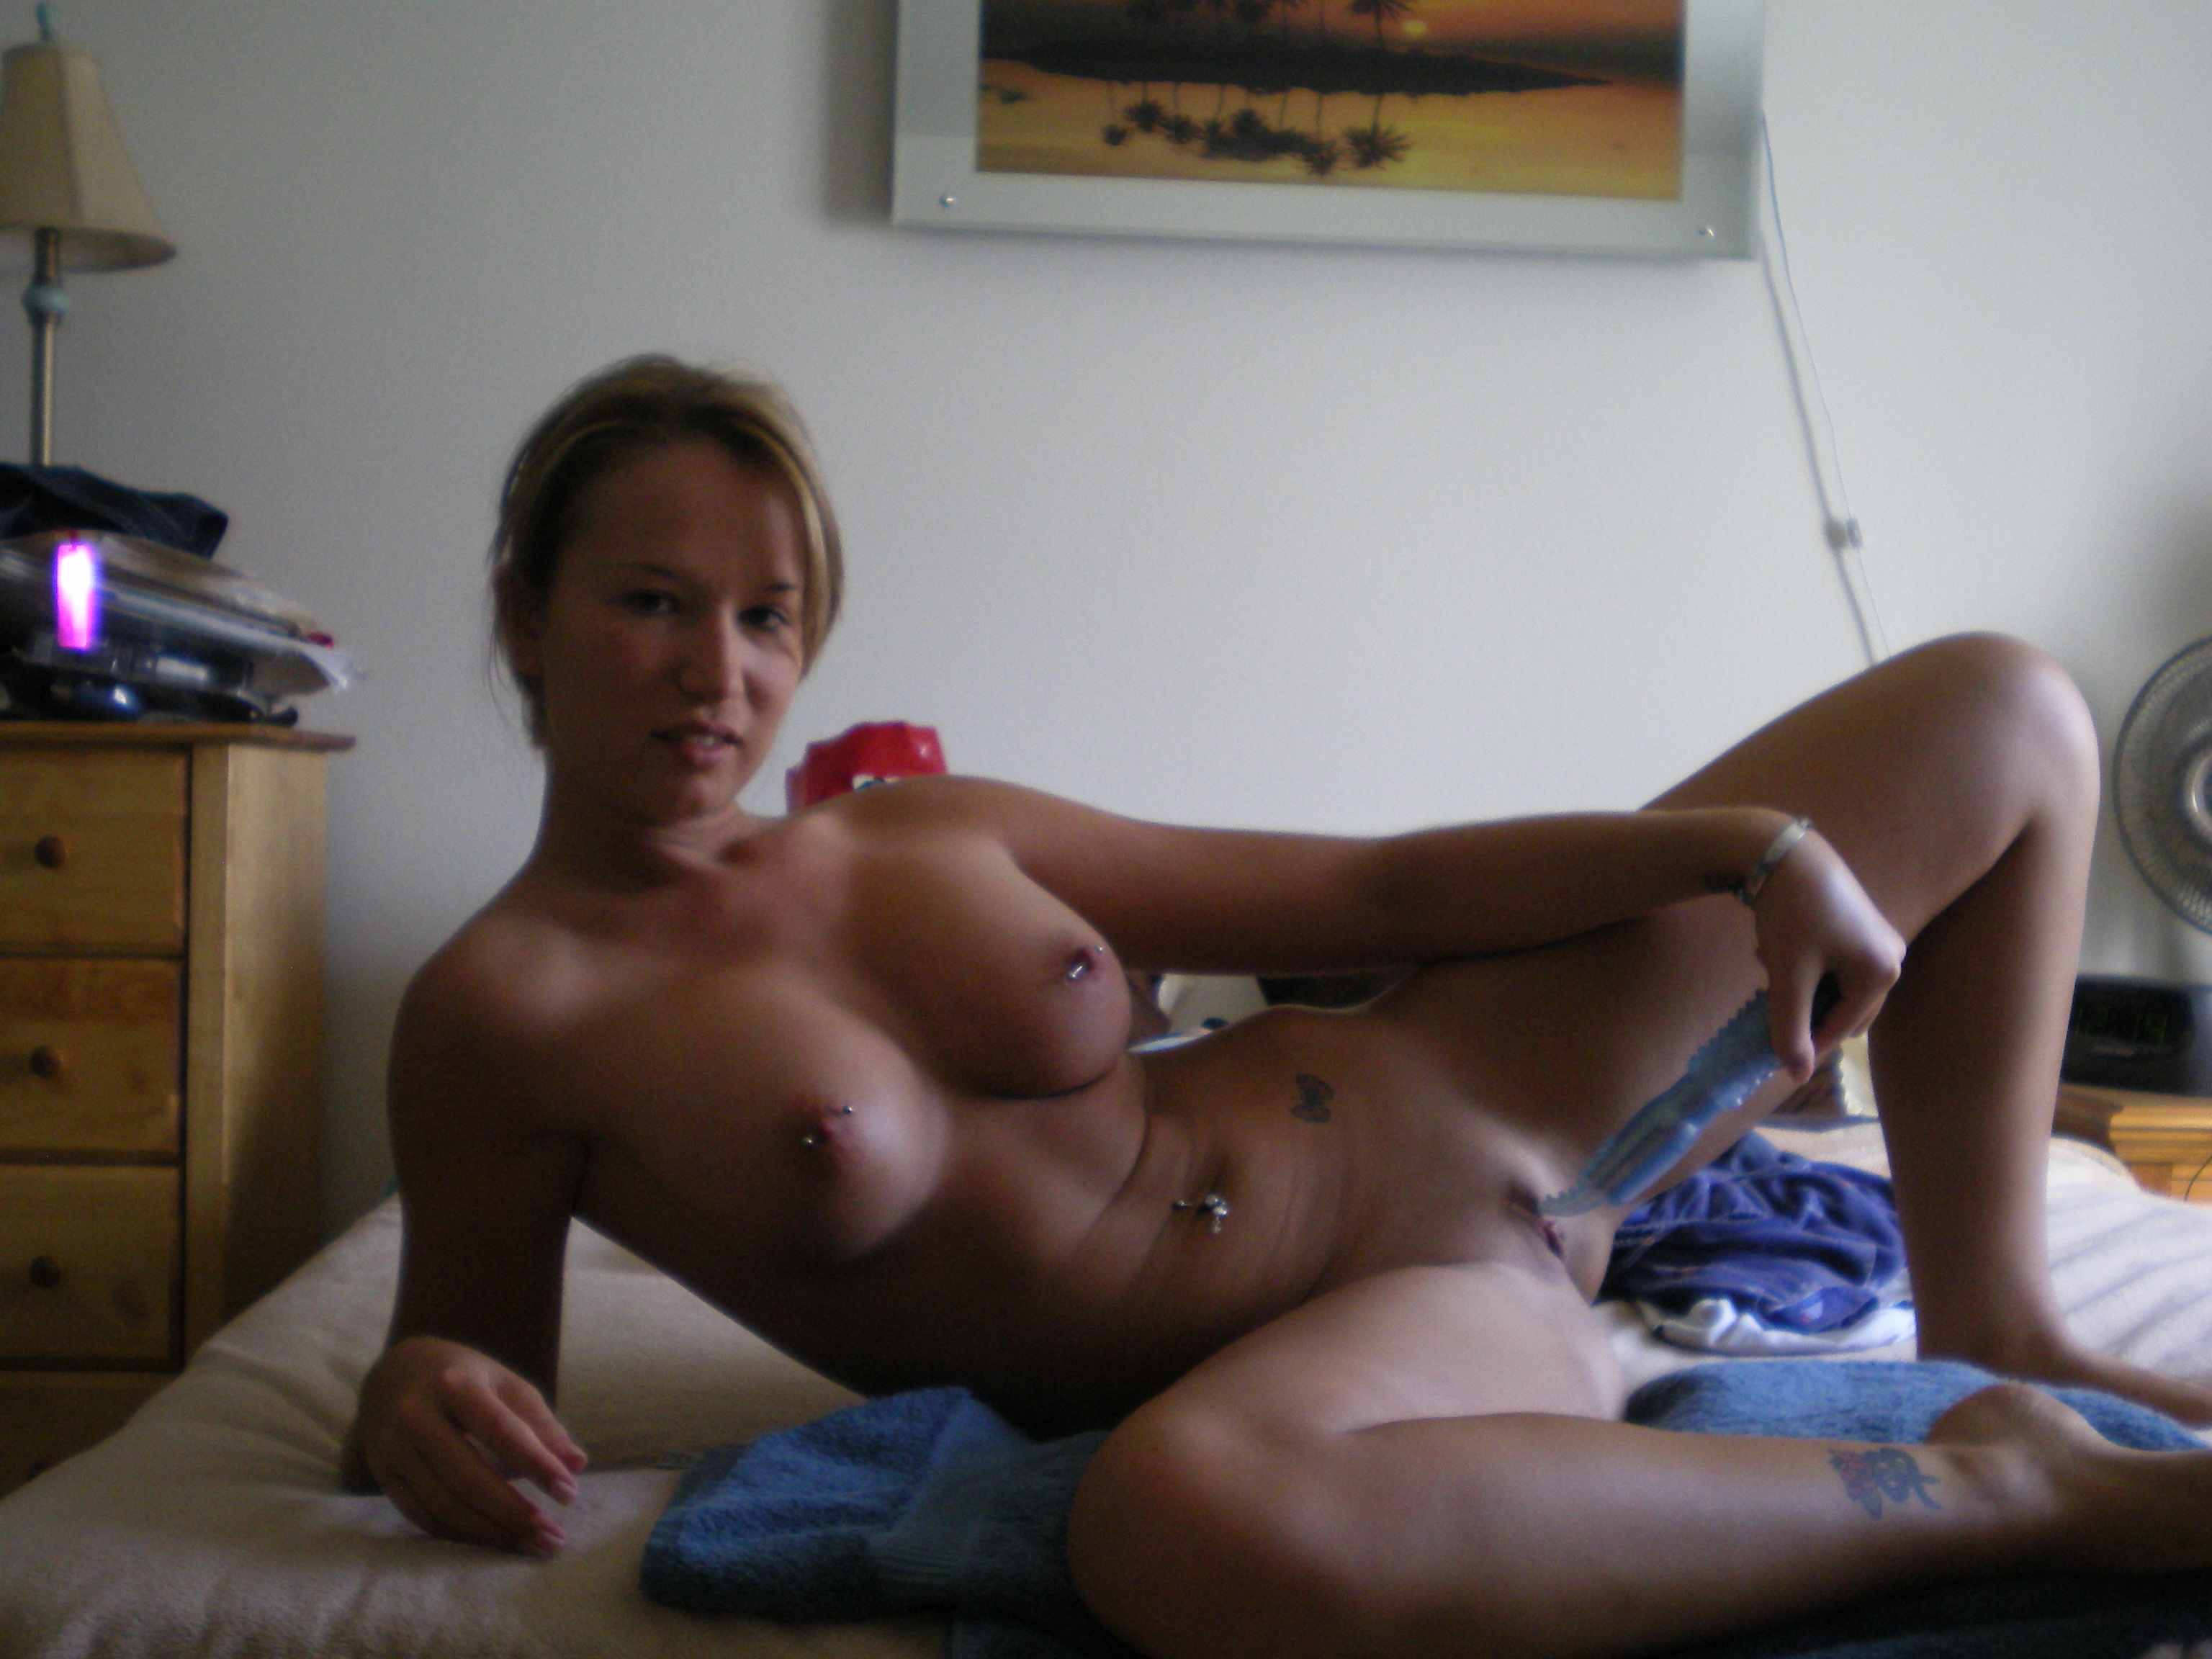 Hot indian young nude girls